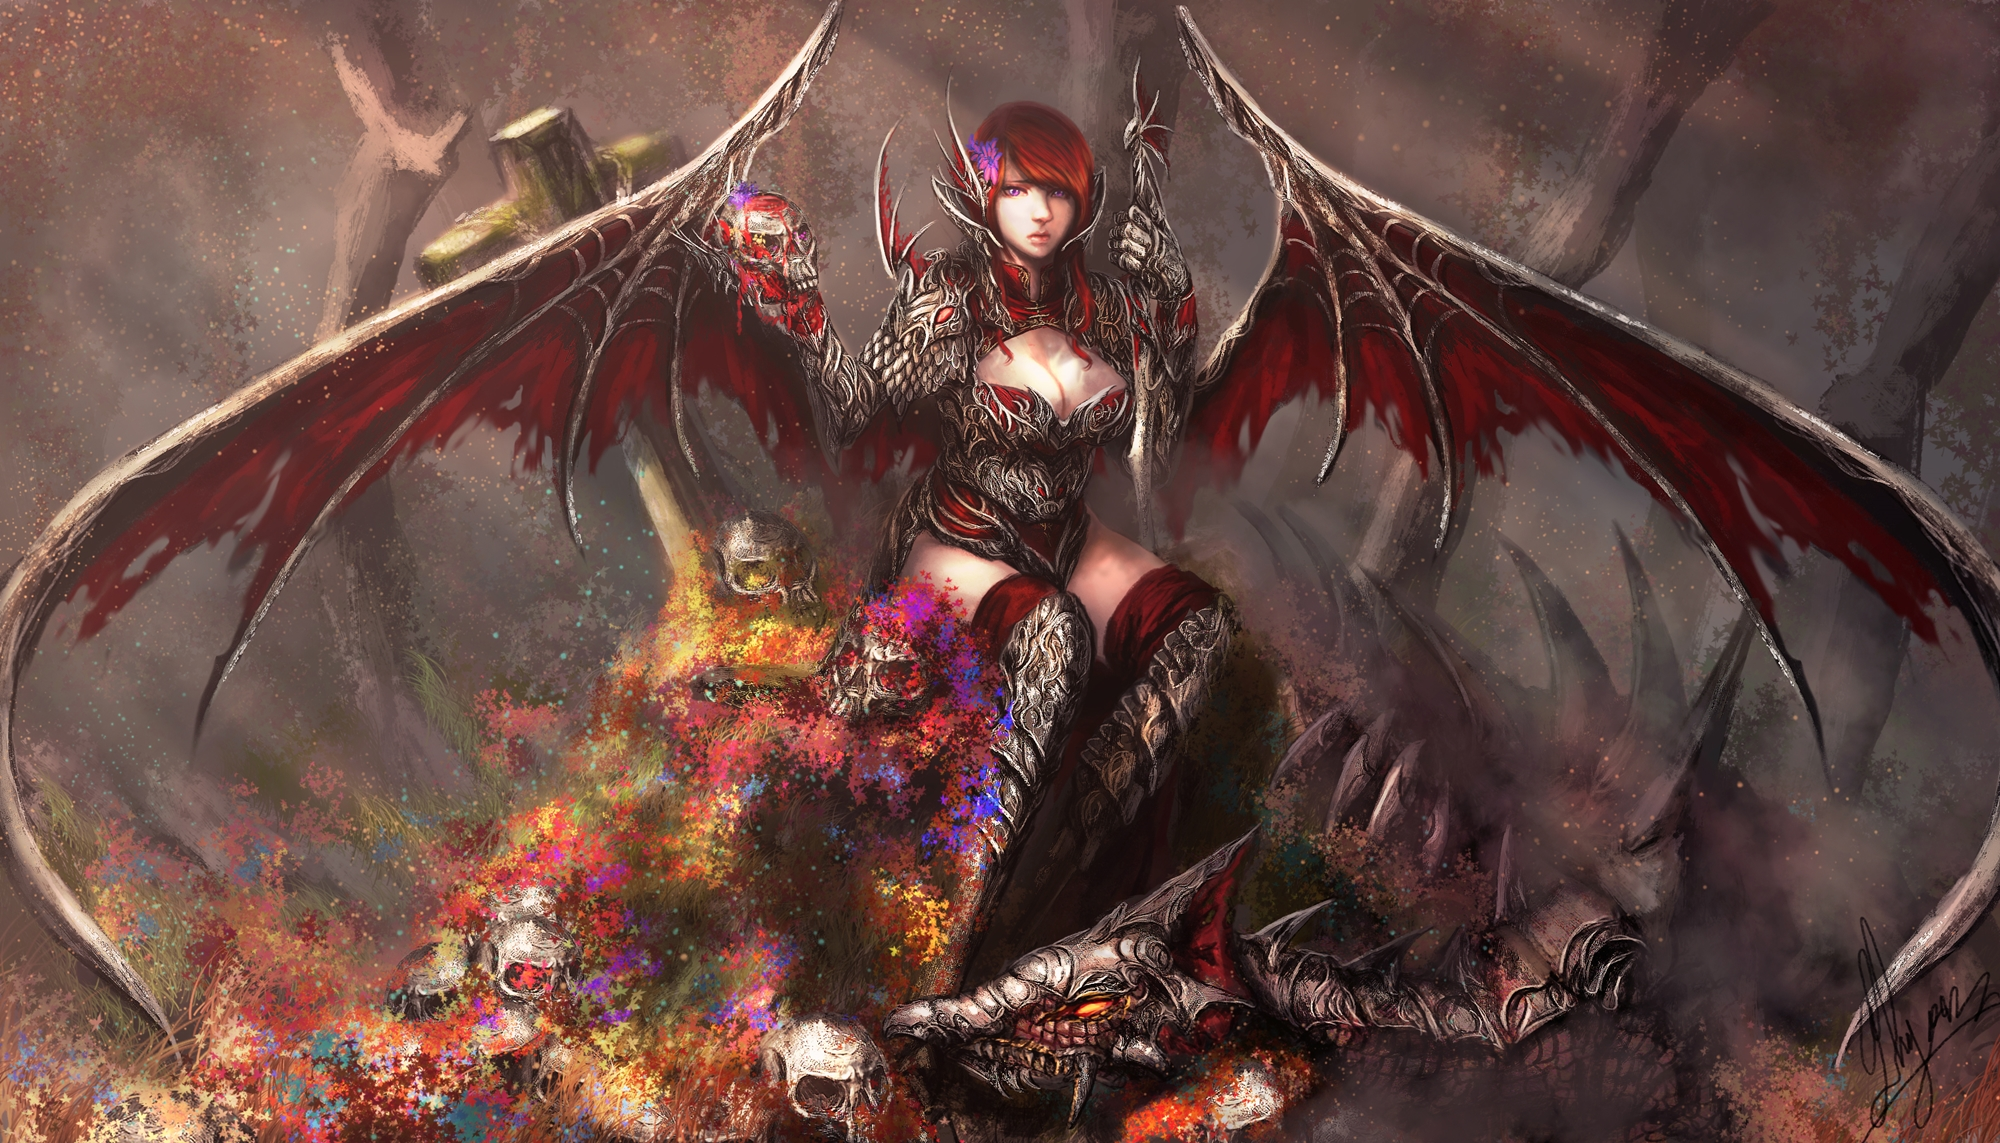 Iphone Wallpaper For Teenage Girl Angel Warrior Full Hd Wallpaper And Background Image